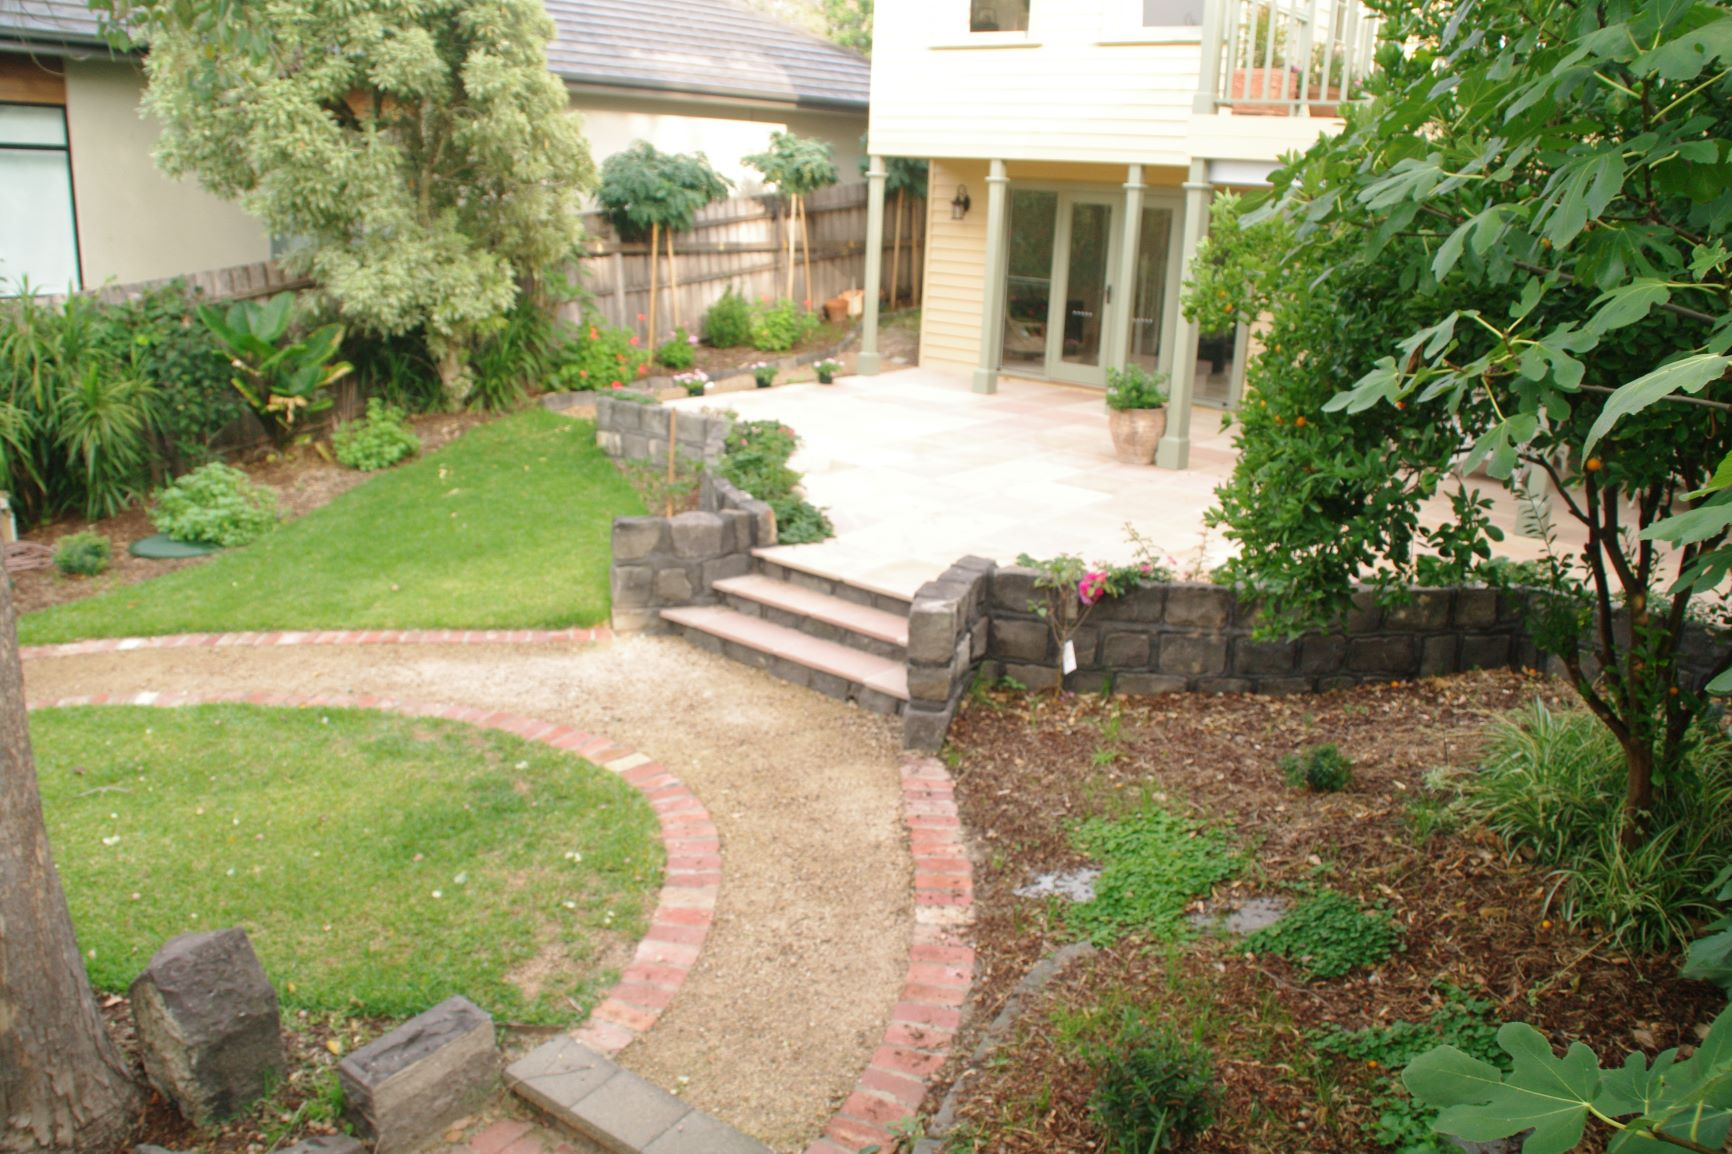 Second hand Red Bricks, Second hand Red Brick path edging Surrey Hills, Path edging, Compacted sandstone path.